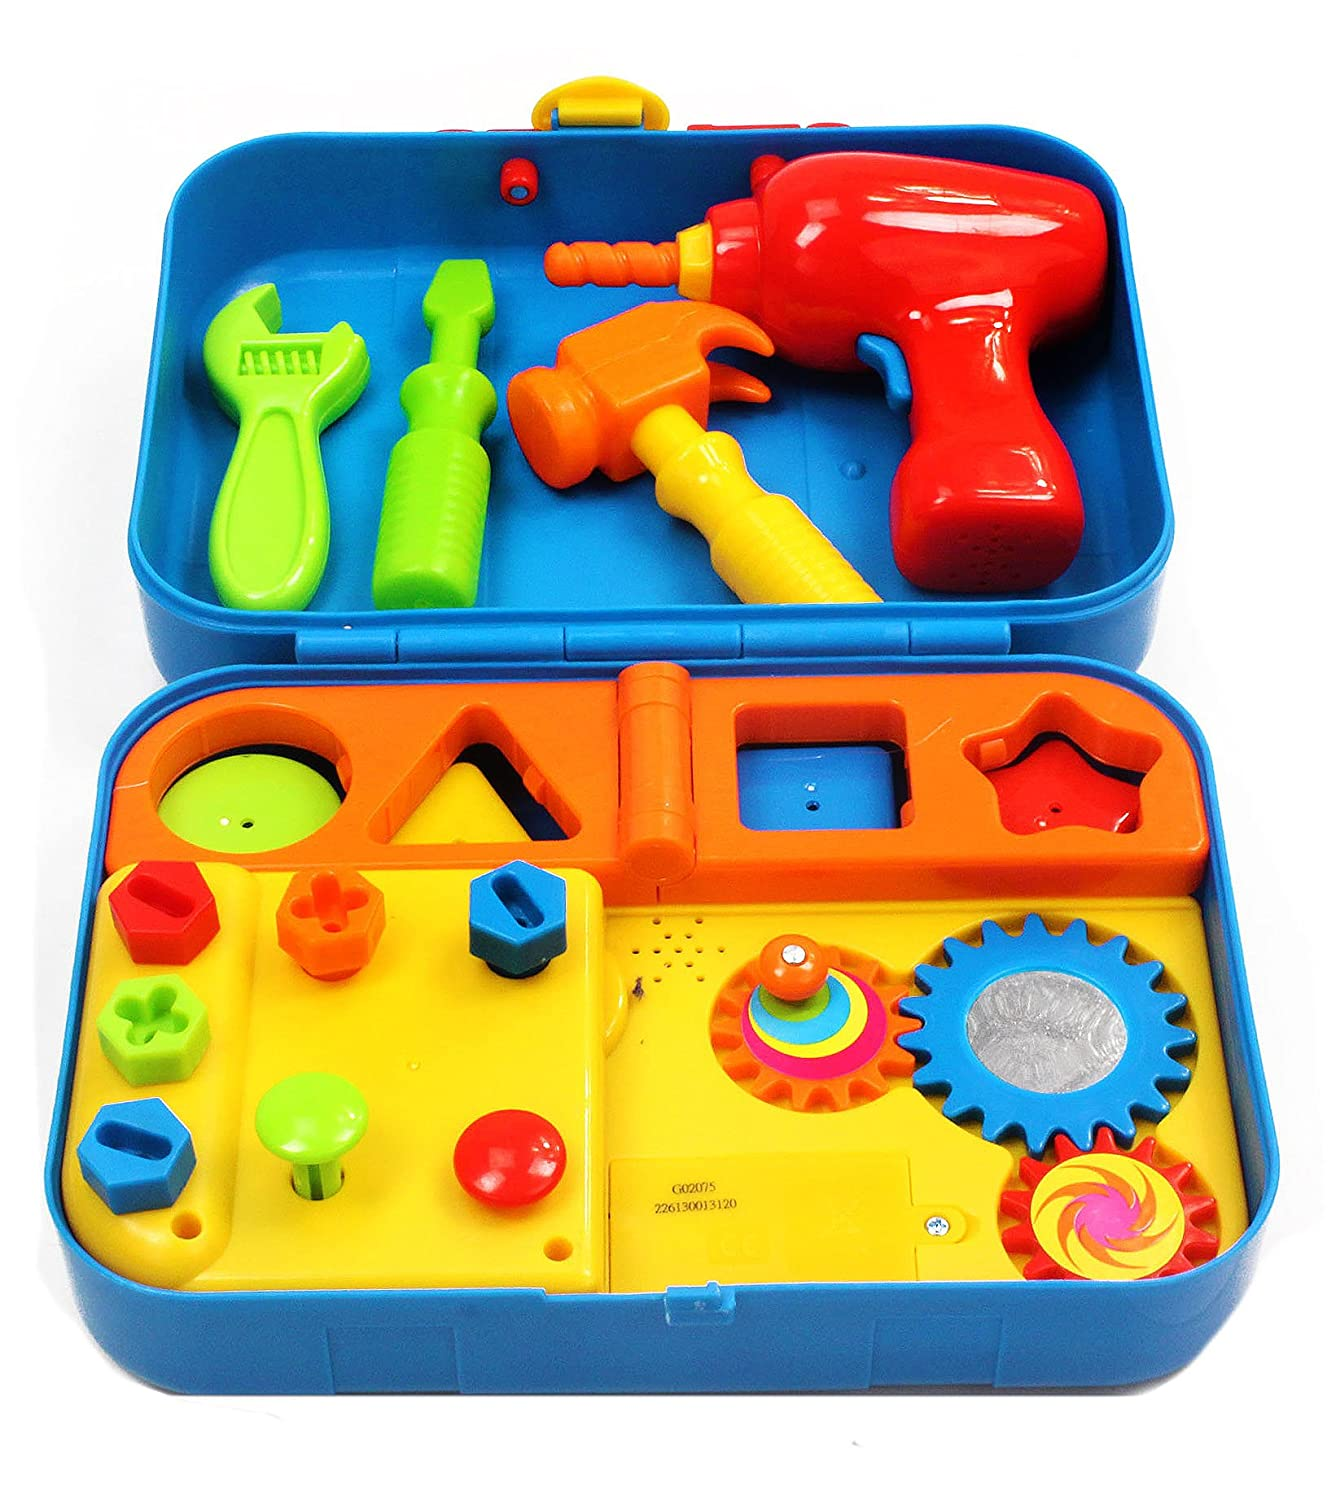 Cool Toys For Boys : Best gifts for year old boys in itsy bitsy fun